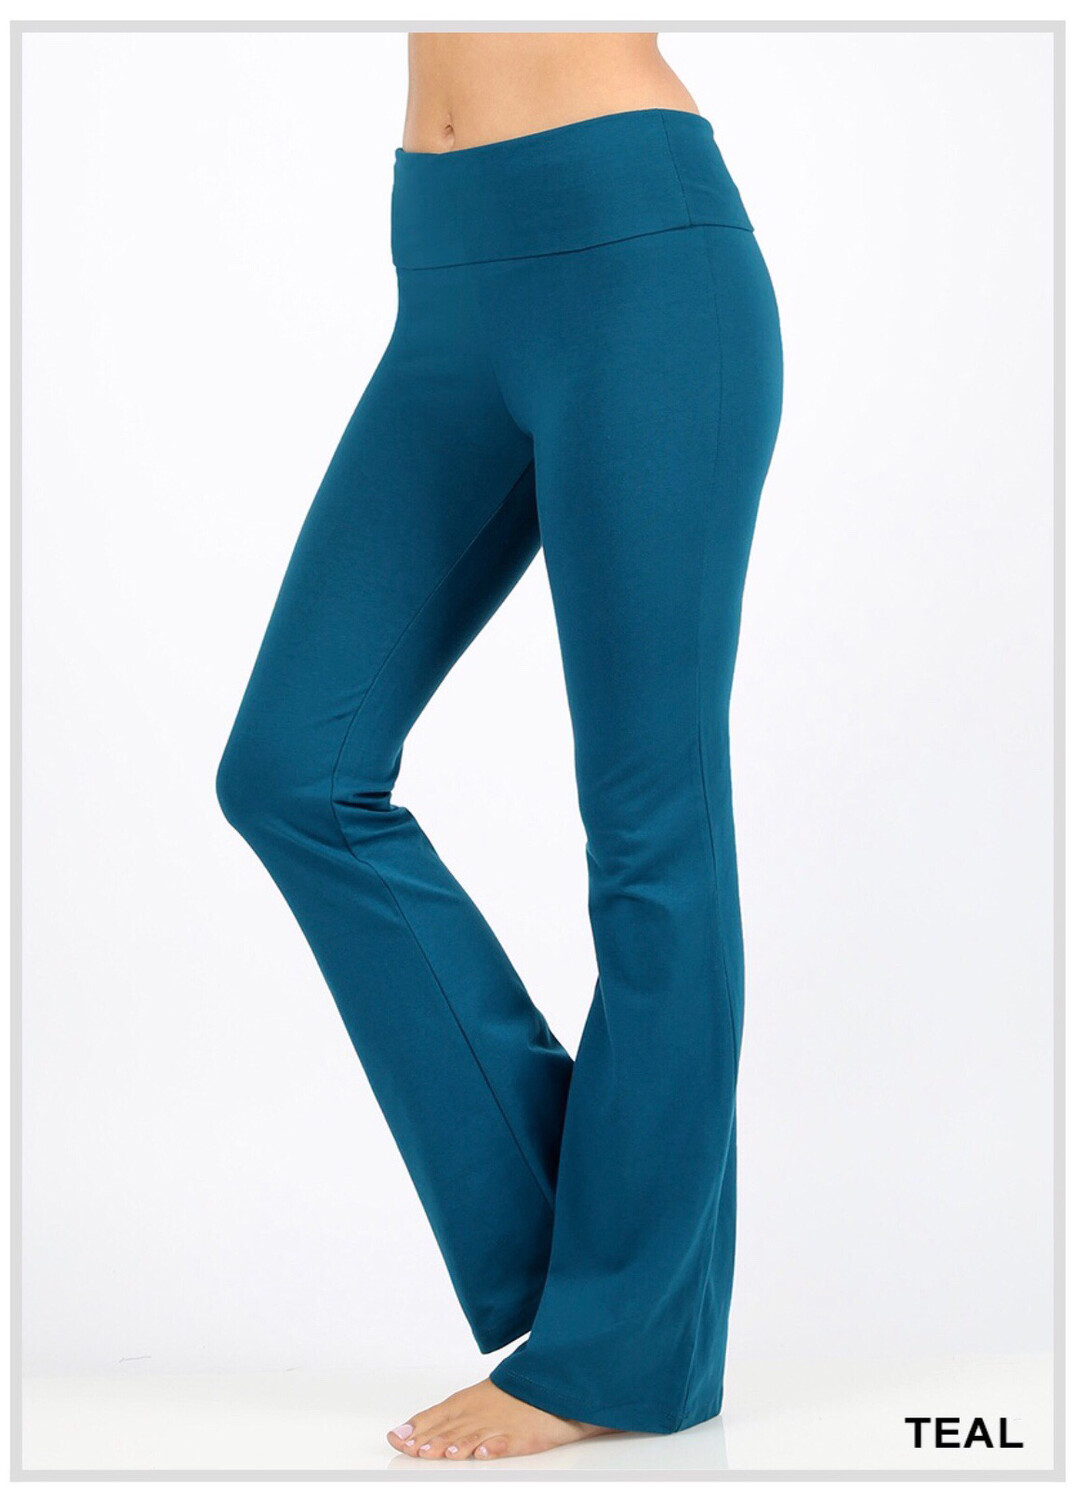 Cotton Flare Pants Teal Yoga Band Size Large